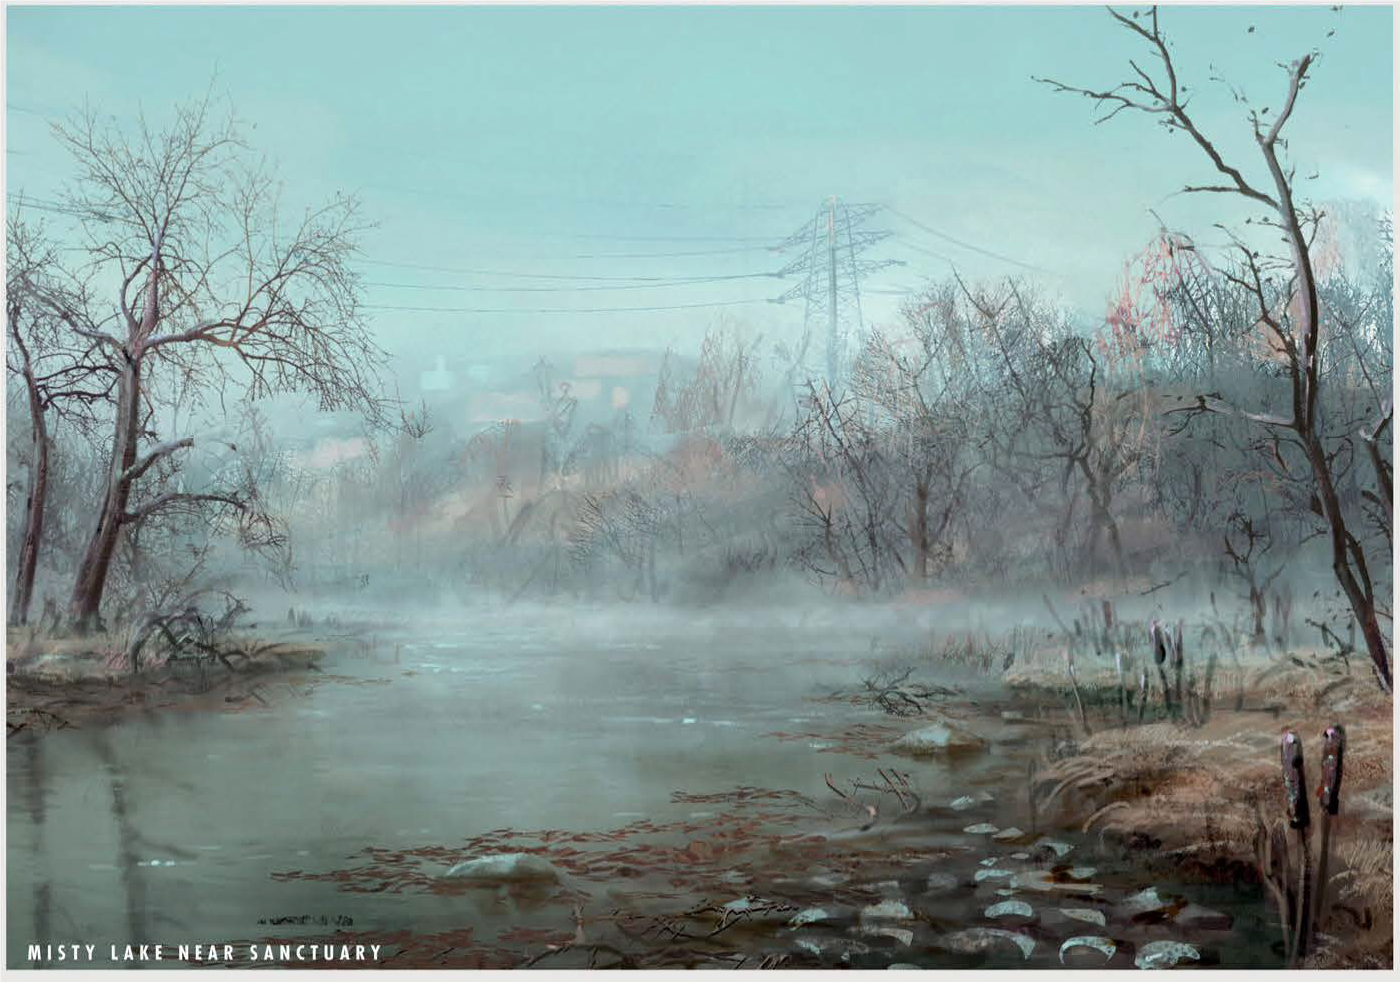 Fo4 Misty Lake Near Sanctuary Art